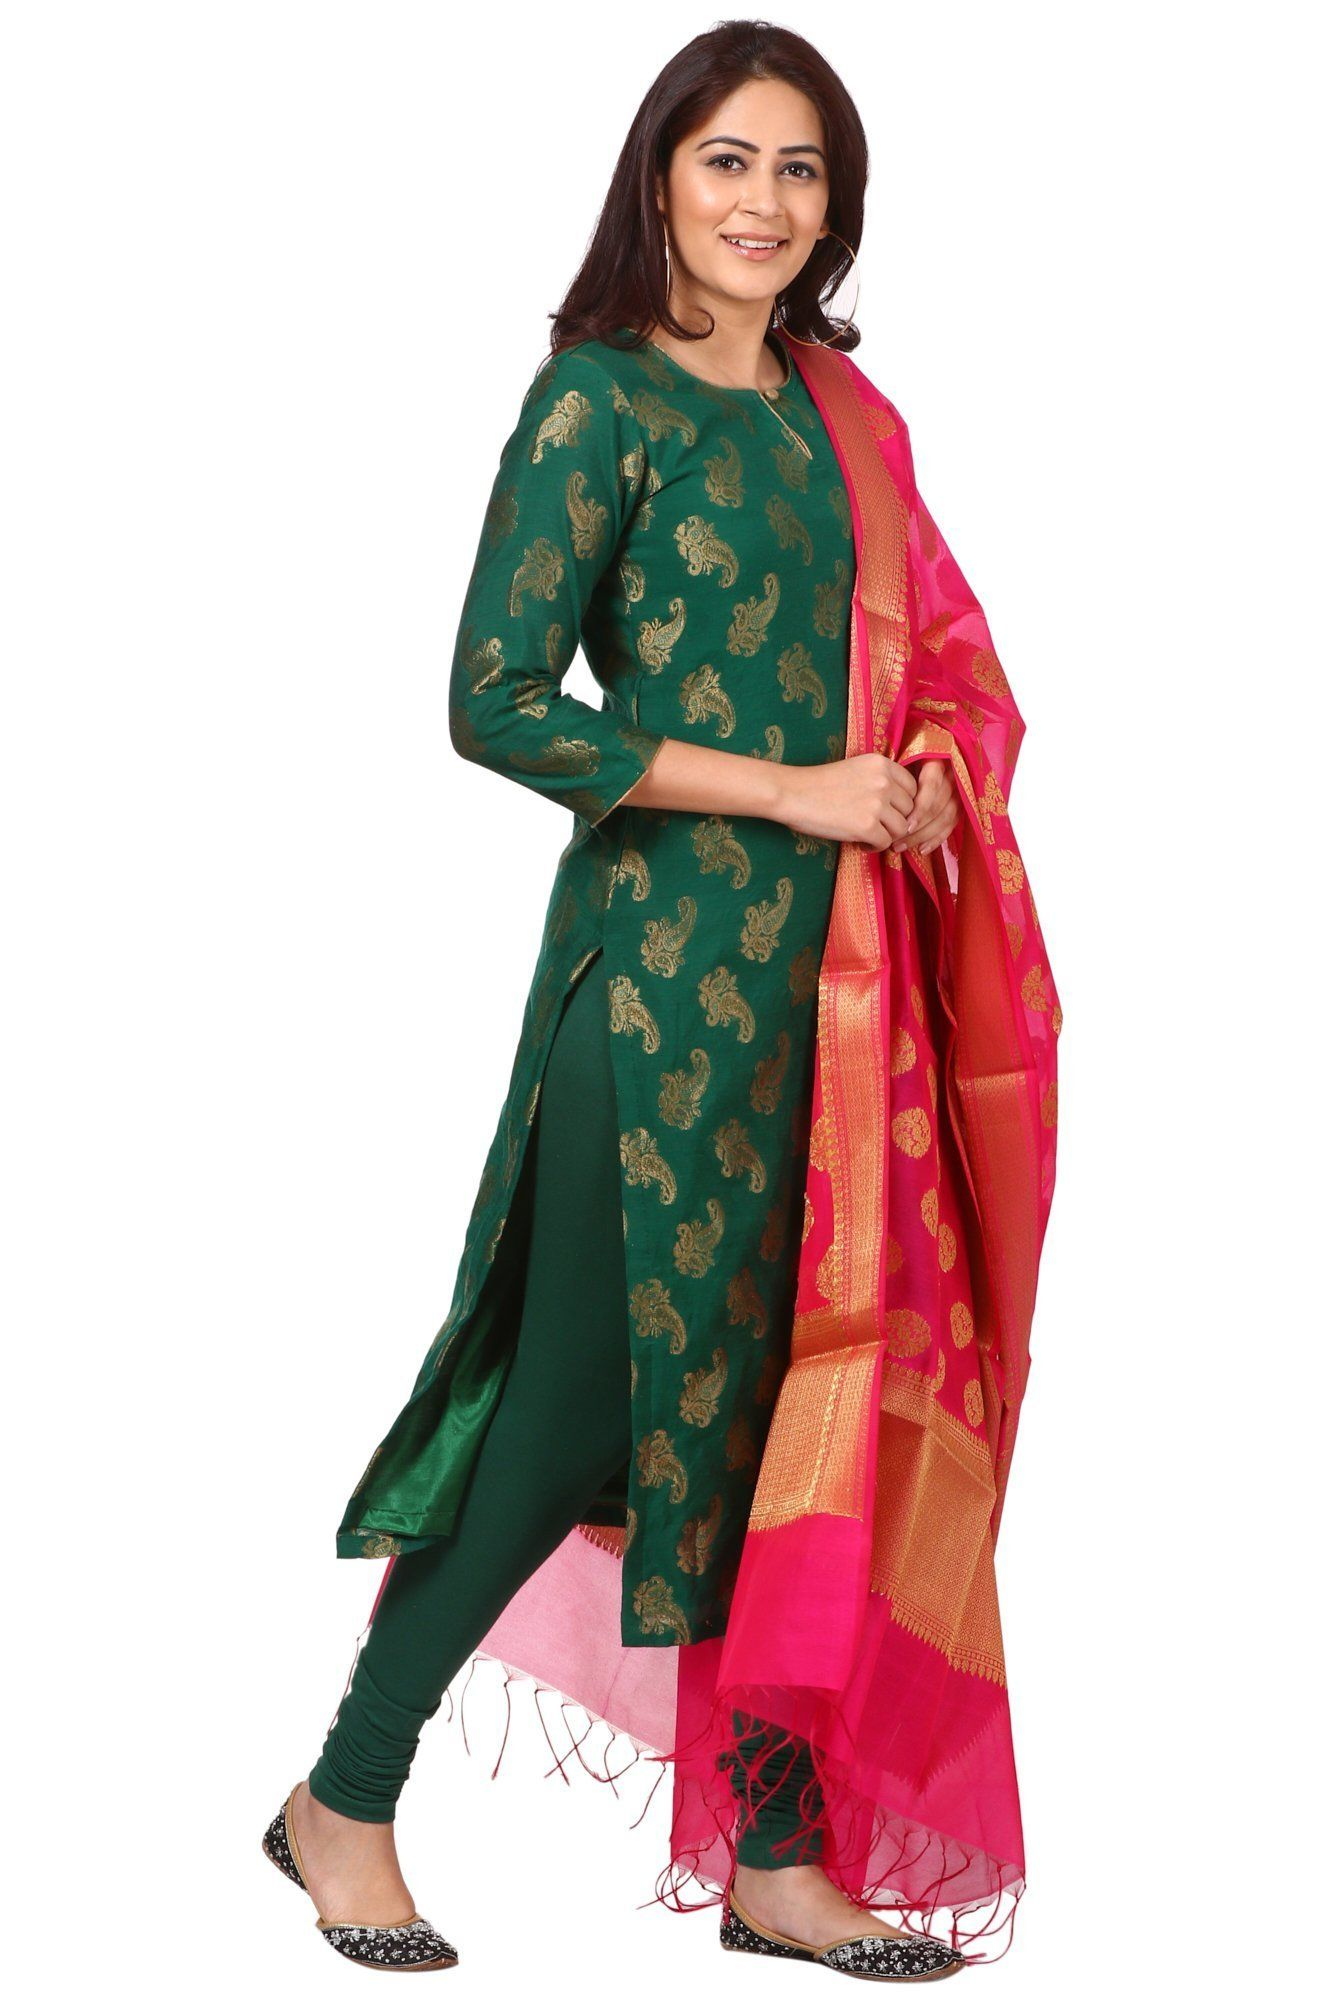 c221dec684 anokherang   Green Royal Paisley Kurti with Leggings and Pink Chanderi  Banarsi dupa   Ethnic Fashion in all sizes from XS to Plus Sizes